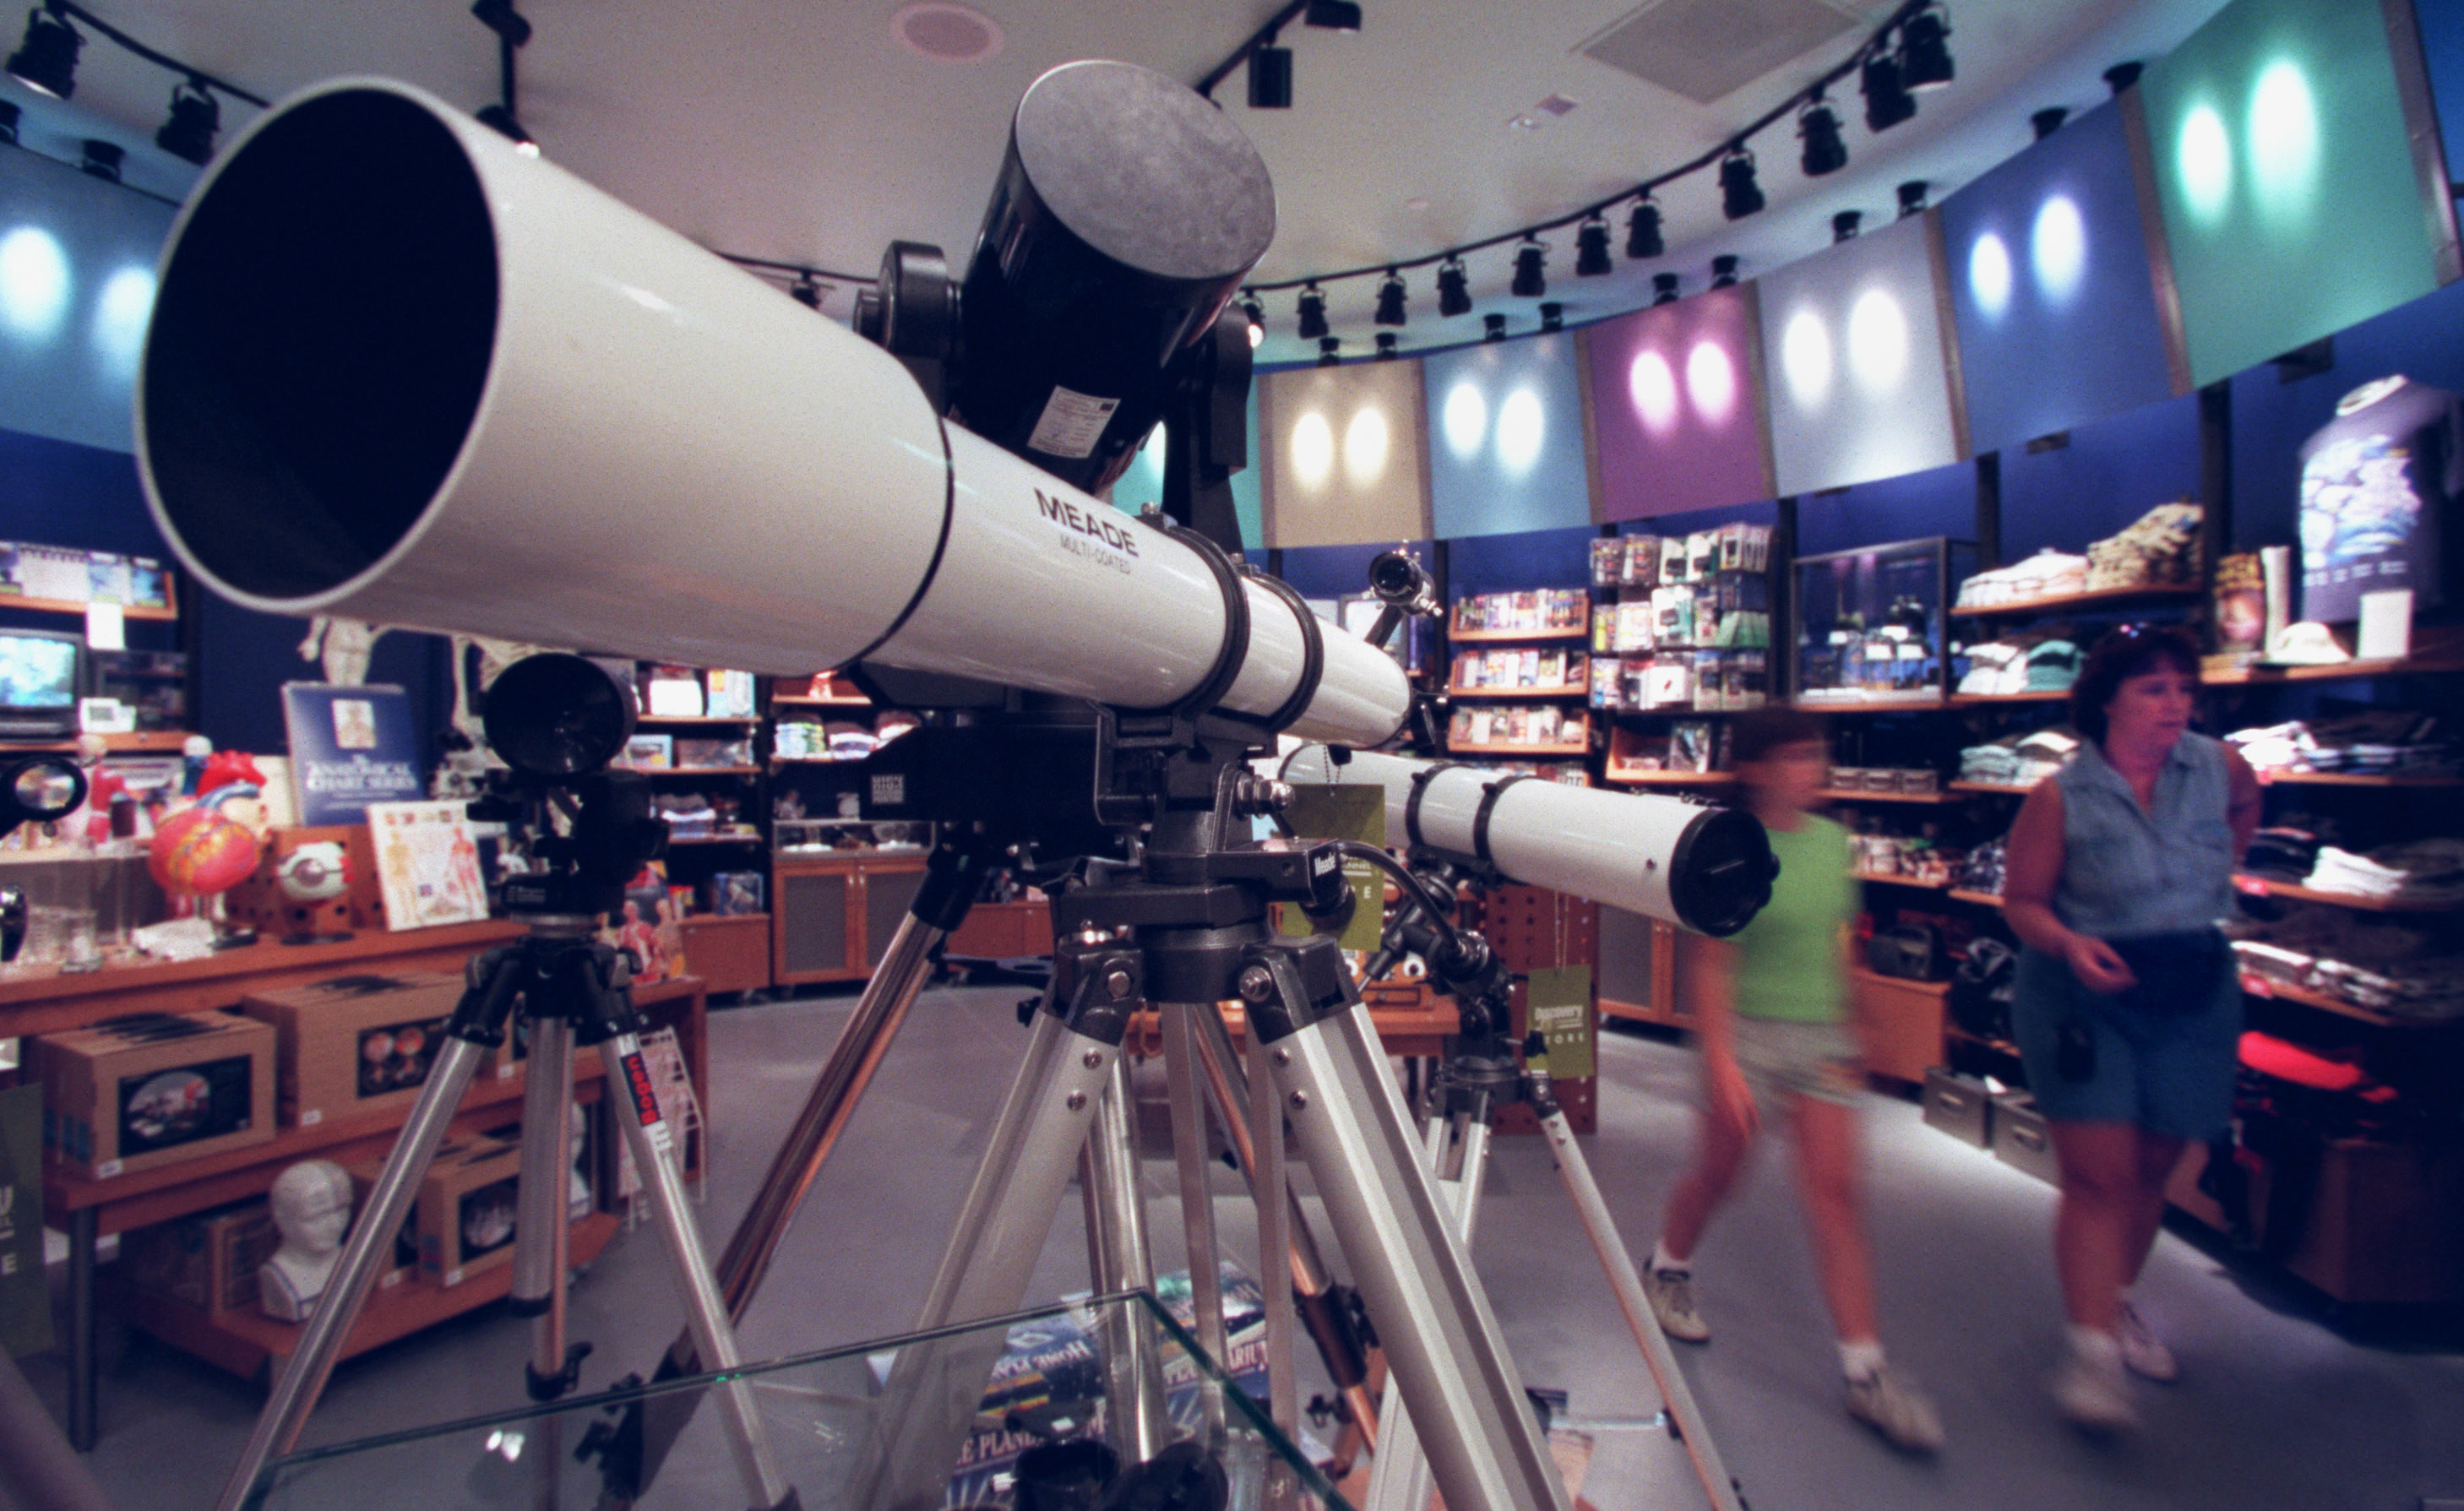 A telescope in the back of a store with shirts on the shelves behind it